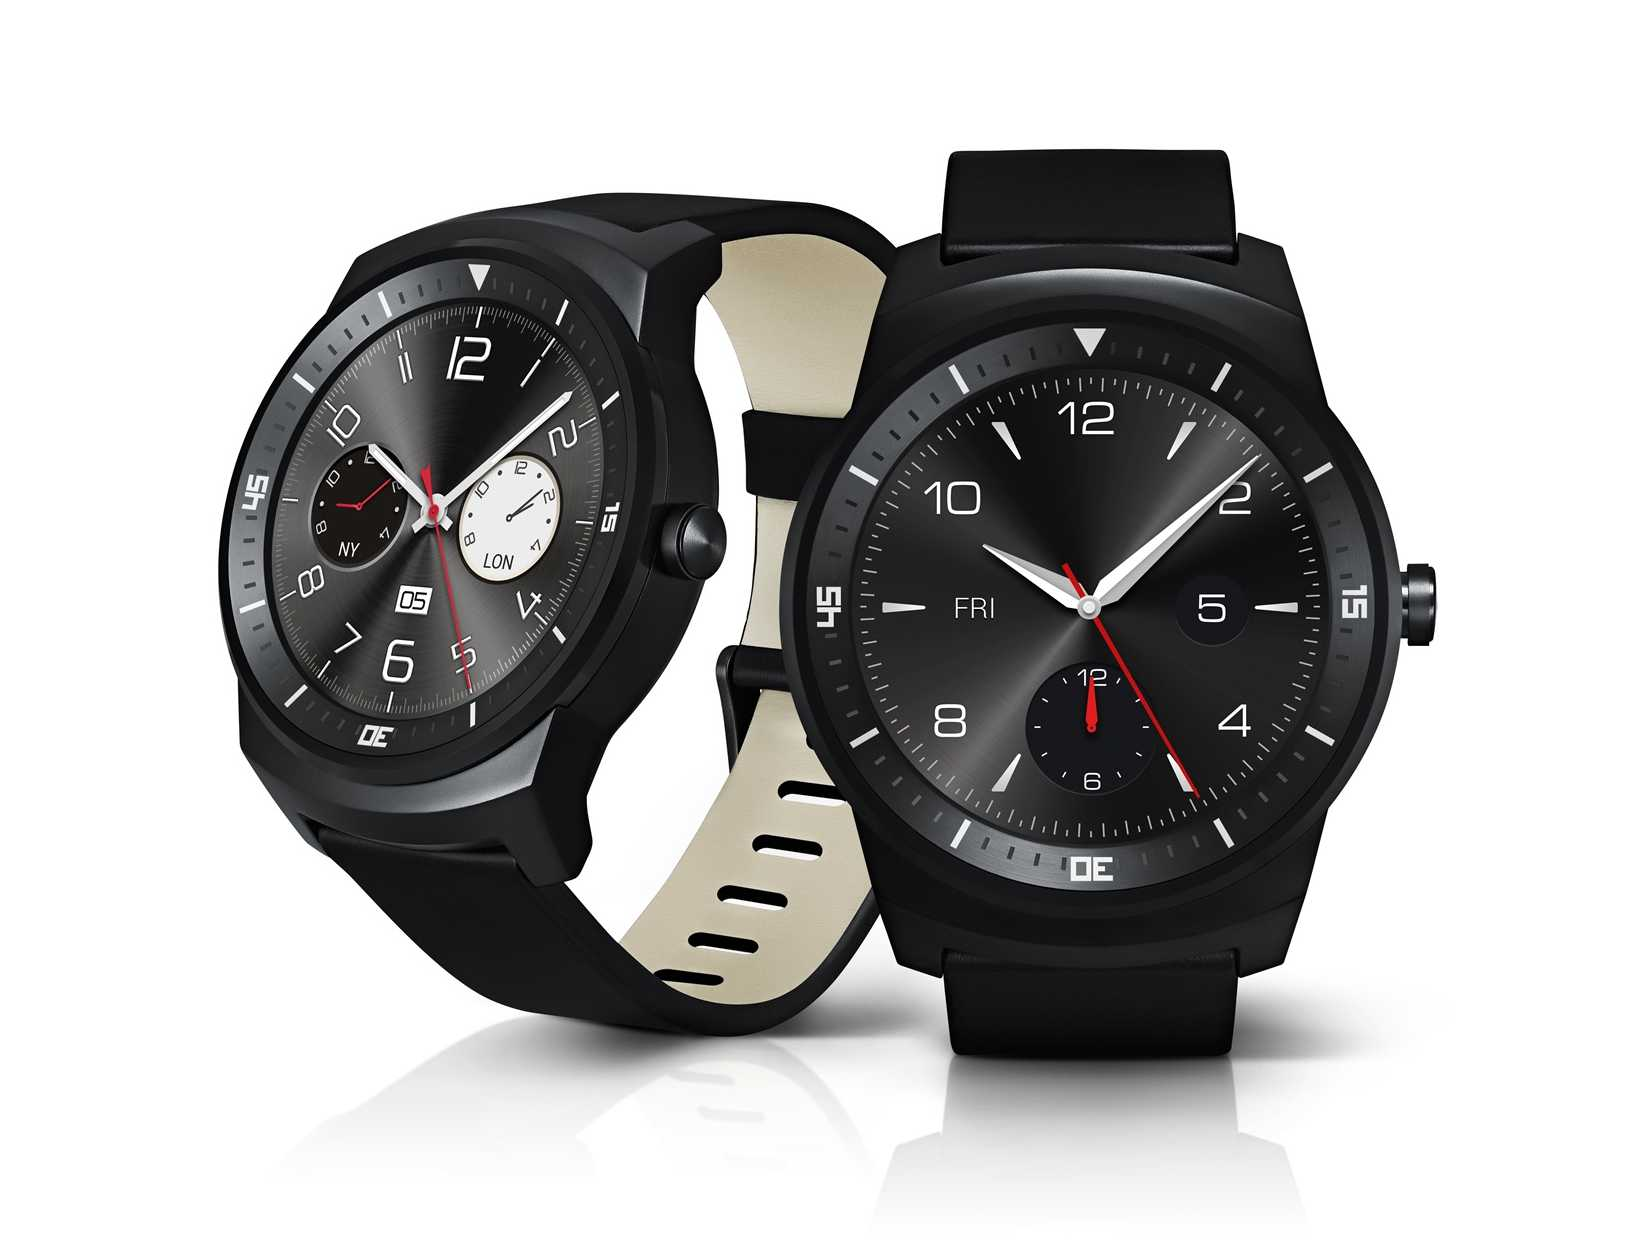 |Ufficiale| LG G Watch R primo smartwatch con display circolare Android Wear al mondo!